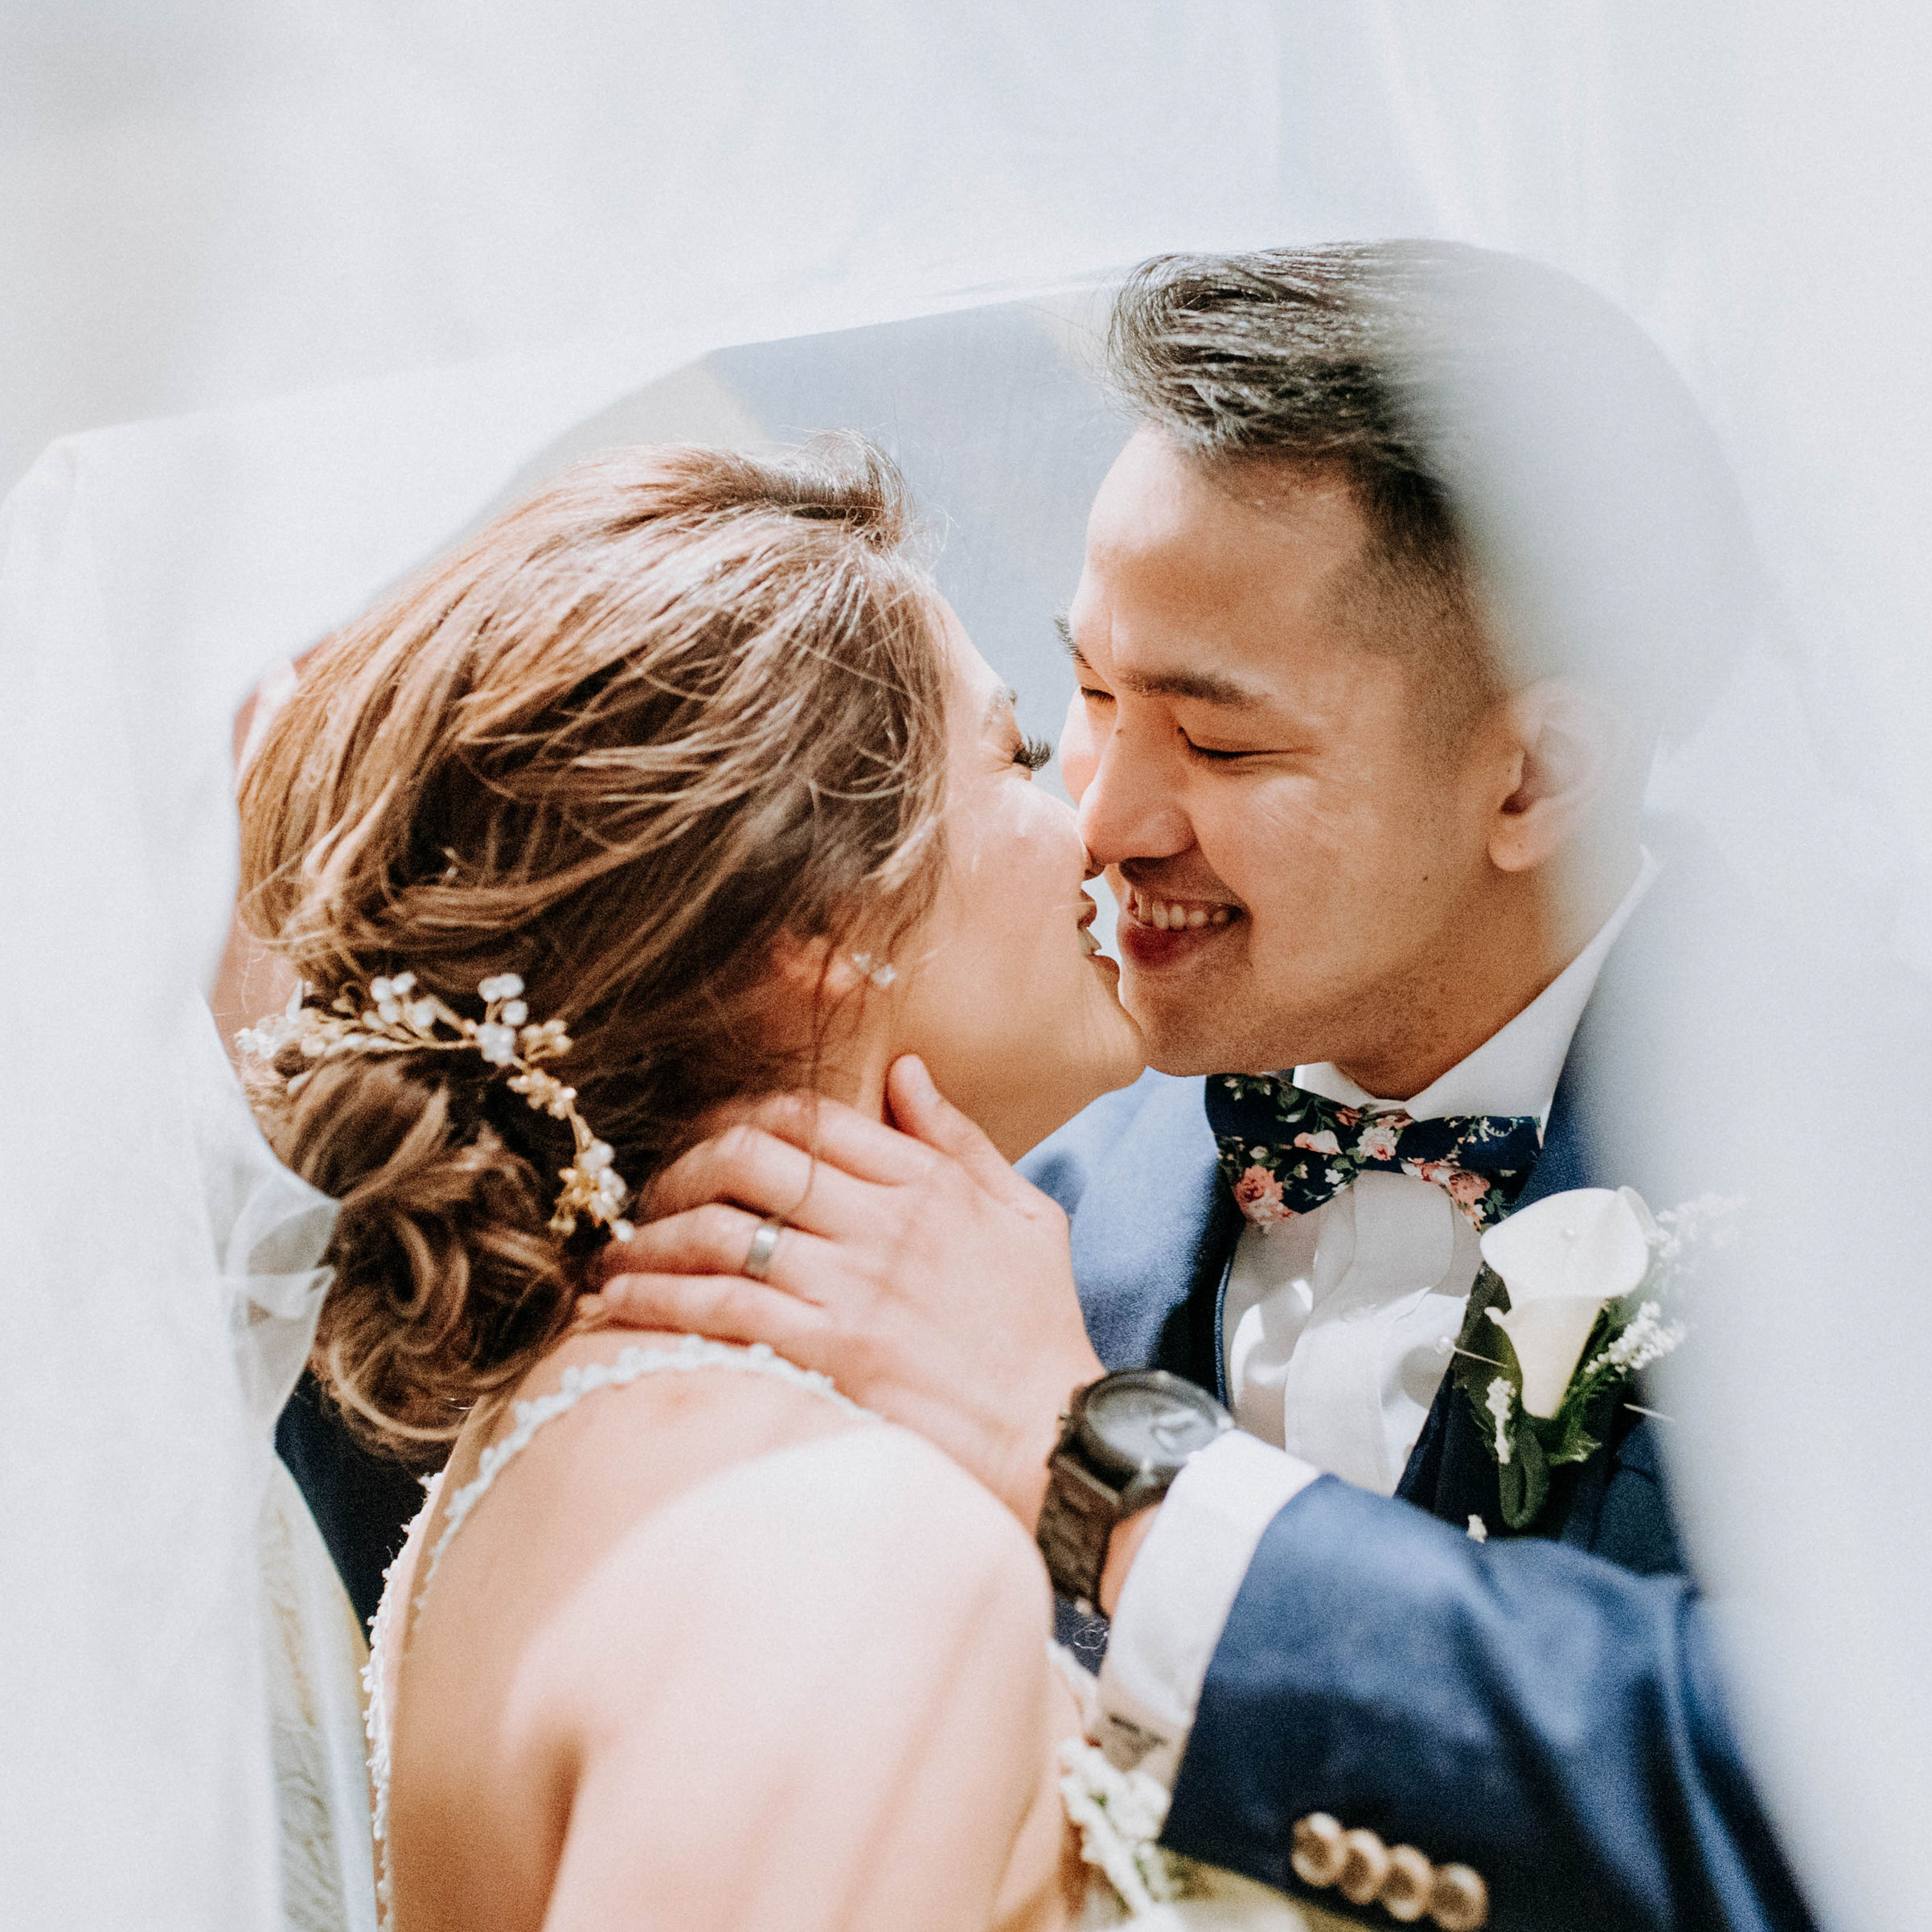 just married couple goes in for kiss under veil after tying the knot, sweet wedding photo inspiration